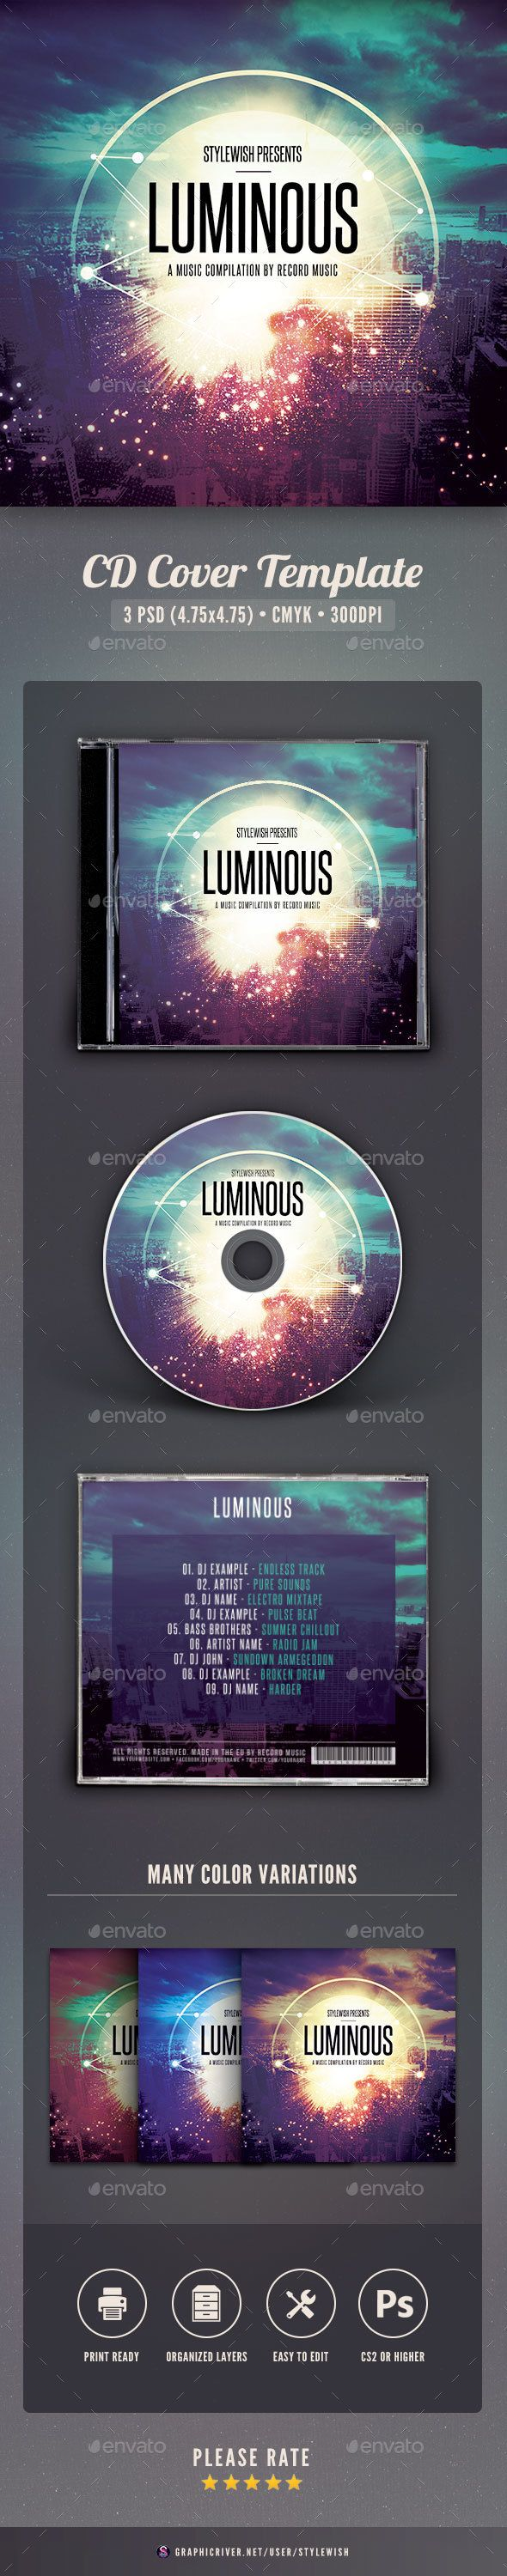 Luminous CD Cover Artwork — Photoshop PSD #concert #cd • Available here → https://graphicriver.net/item/luminous-cd-cover-artwork/15935392?ref=pxcr